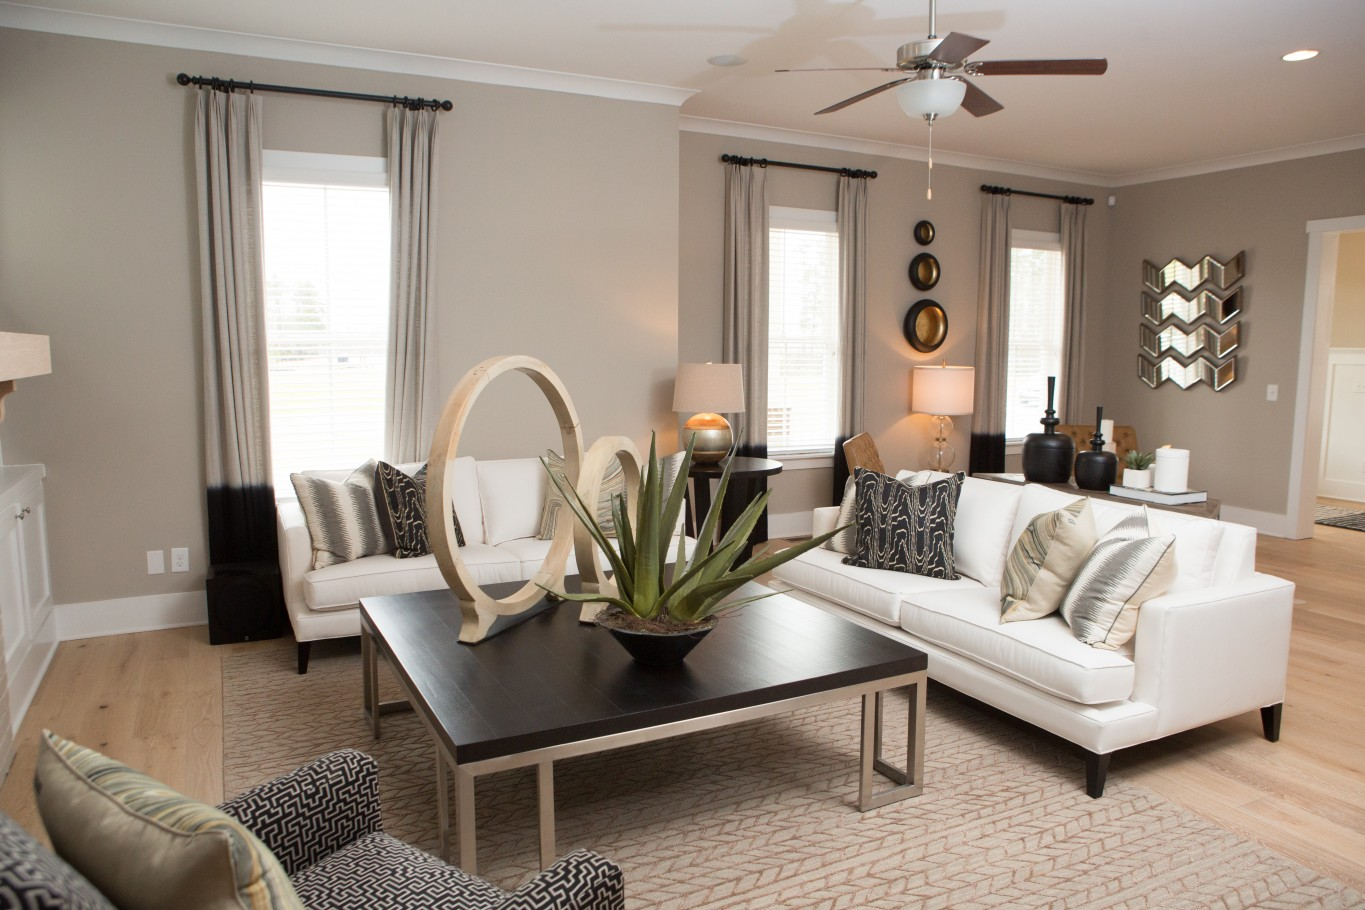 Model Homes Interiors Model Home Interiors » Model Homes